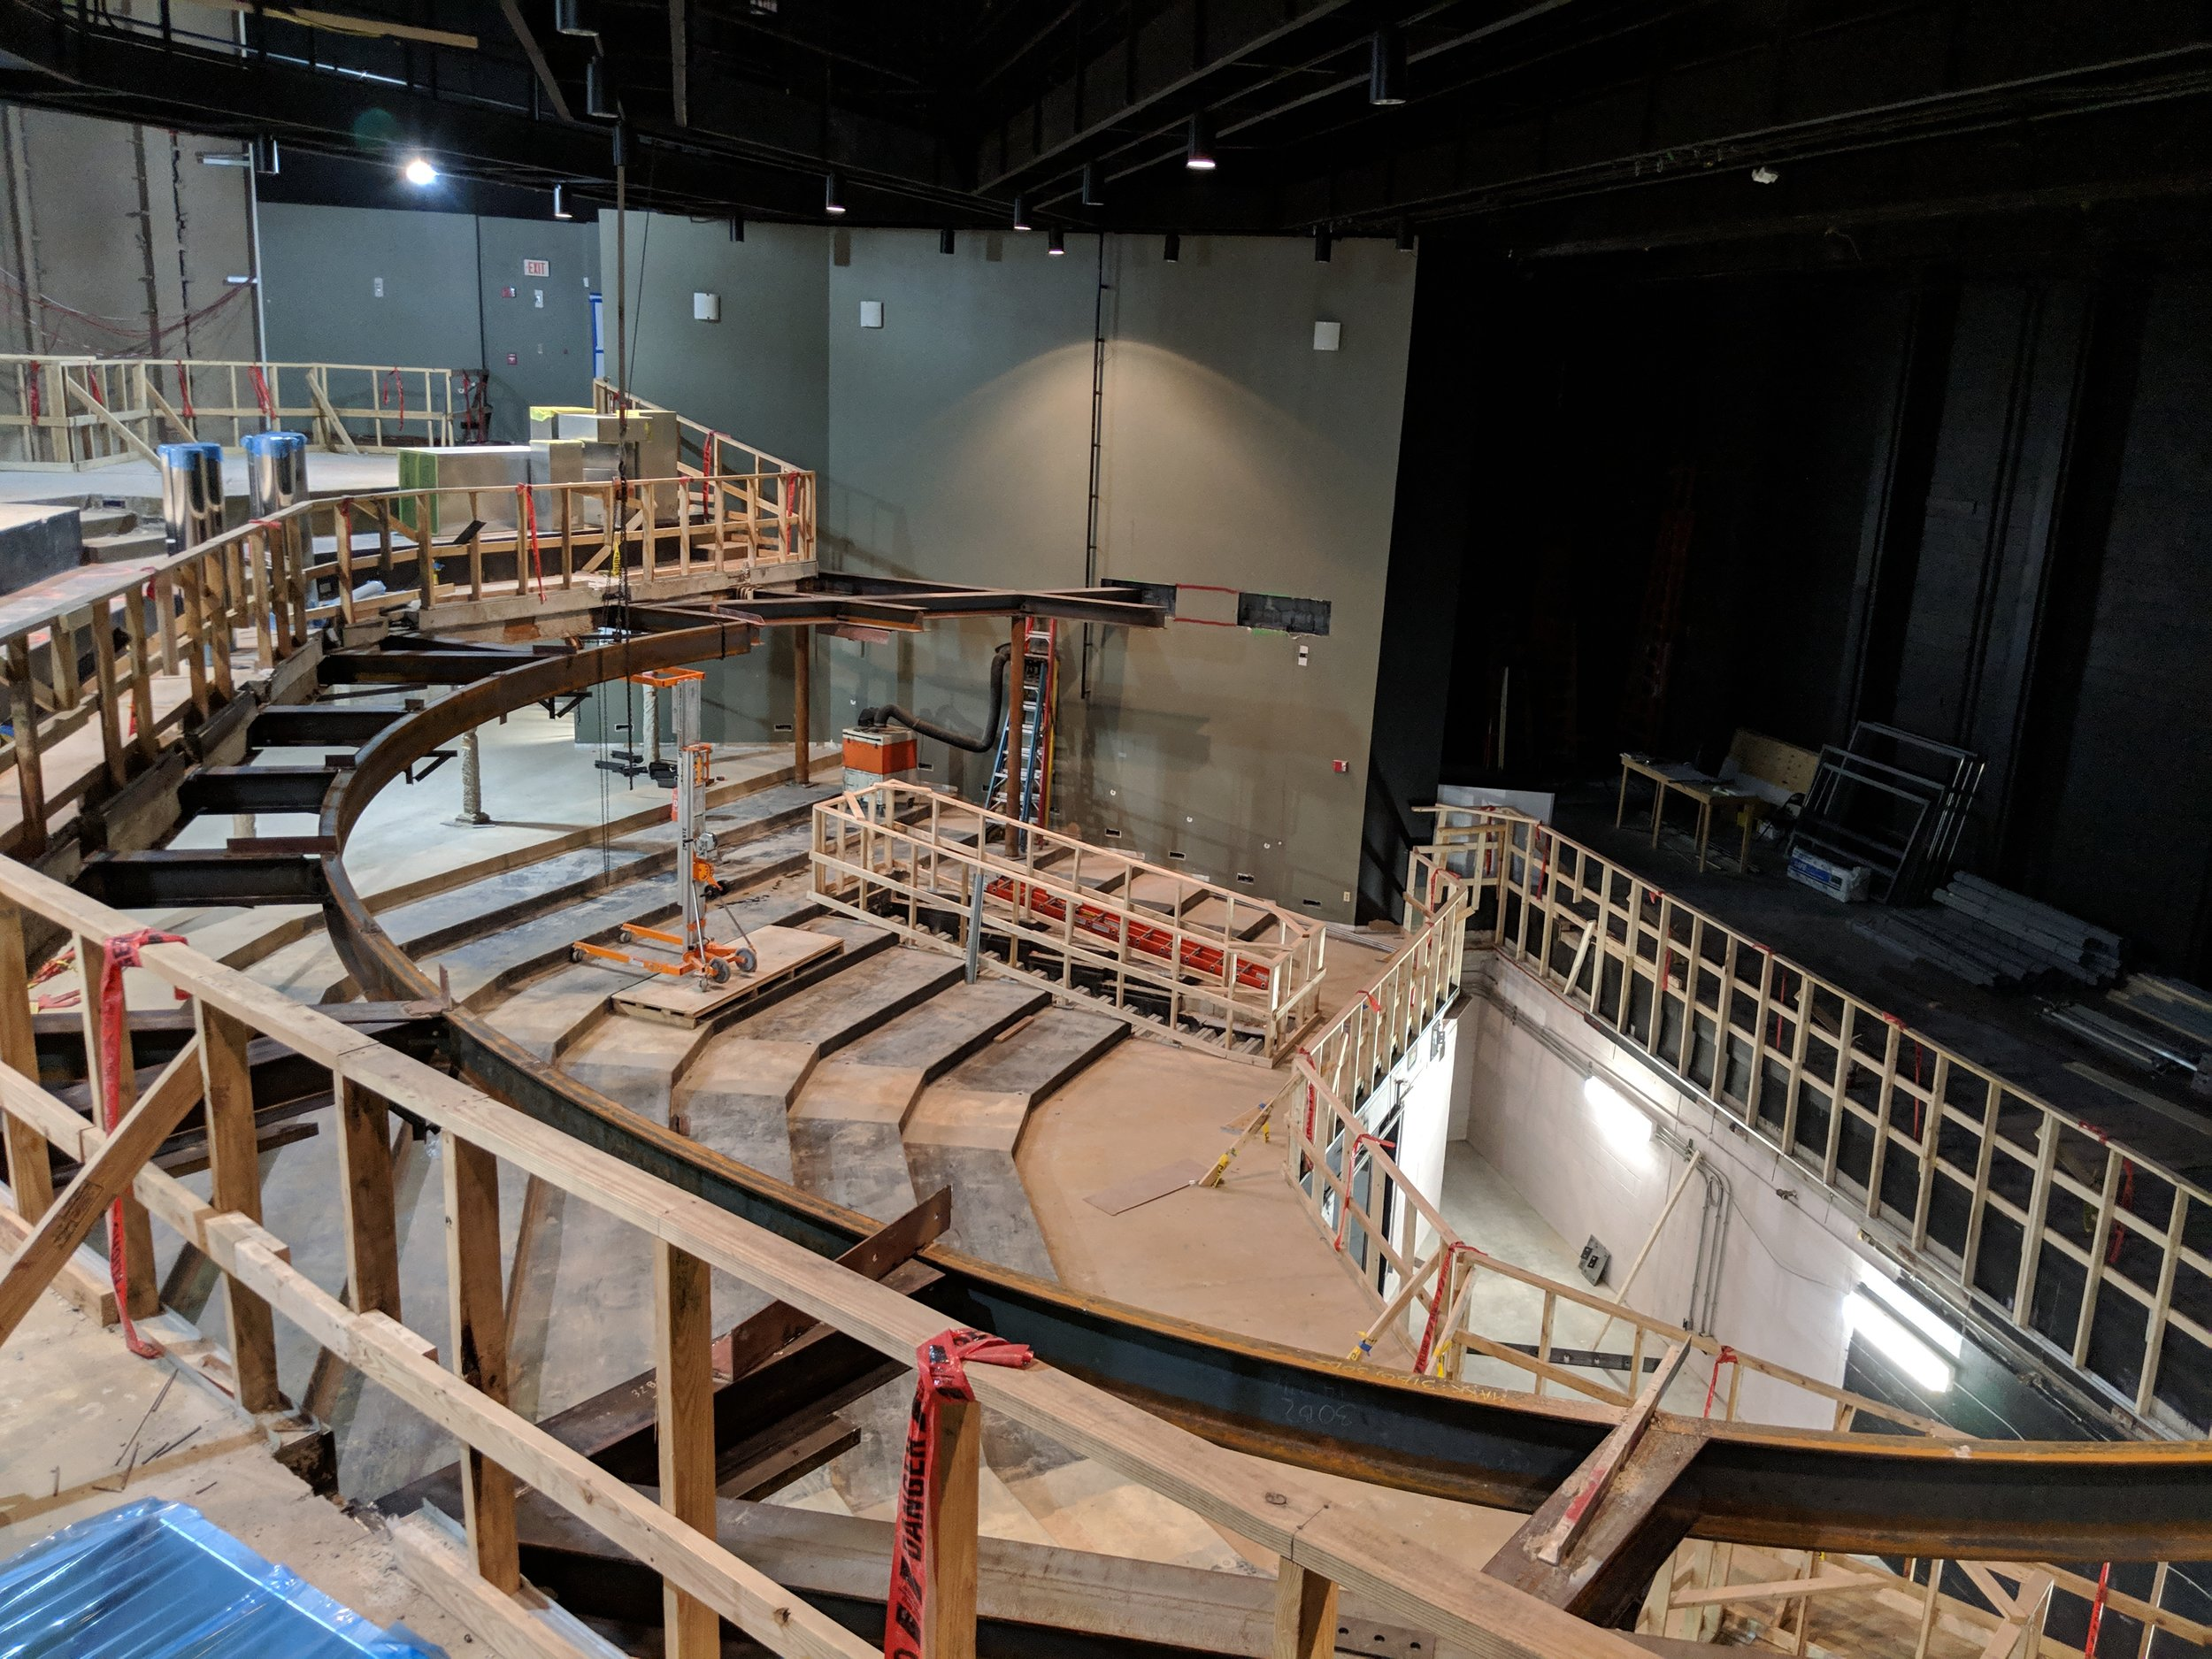 February 2019  - The steel beam you see here serves as the foundation for the new wrapped balcony that will bring the audience closer to the stage.